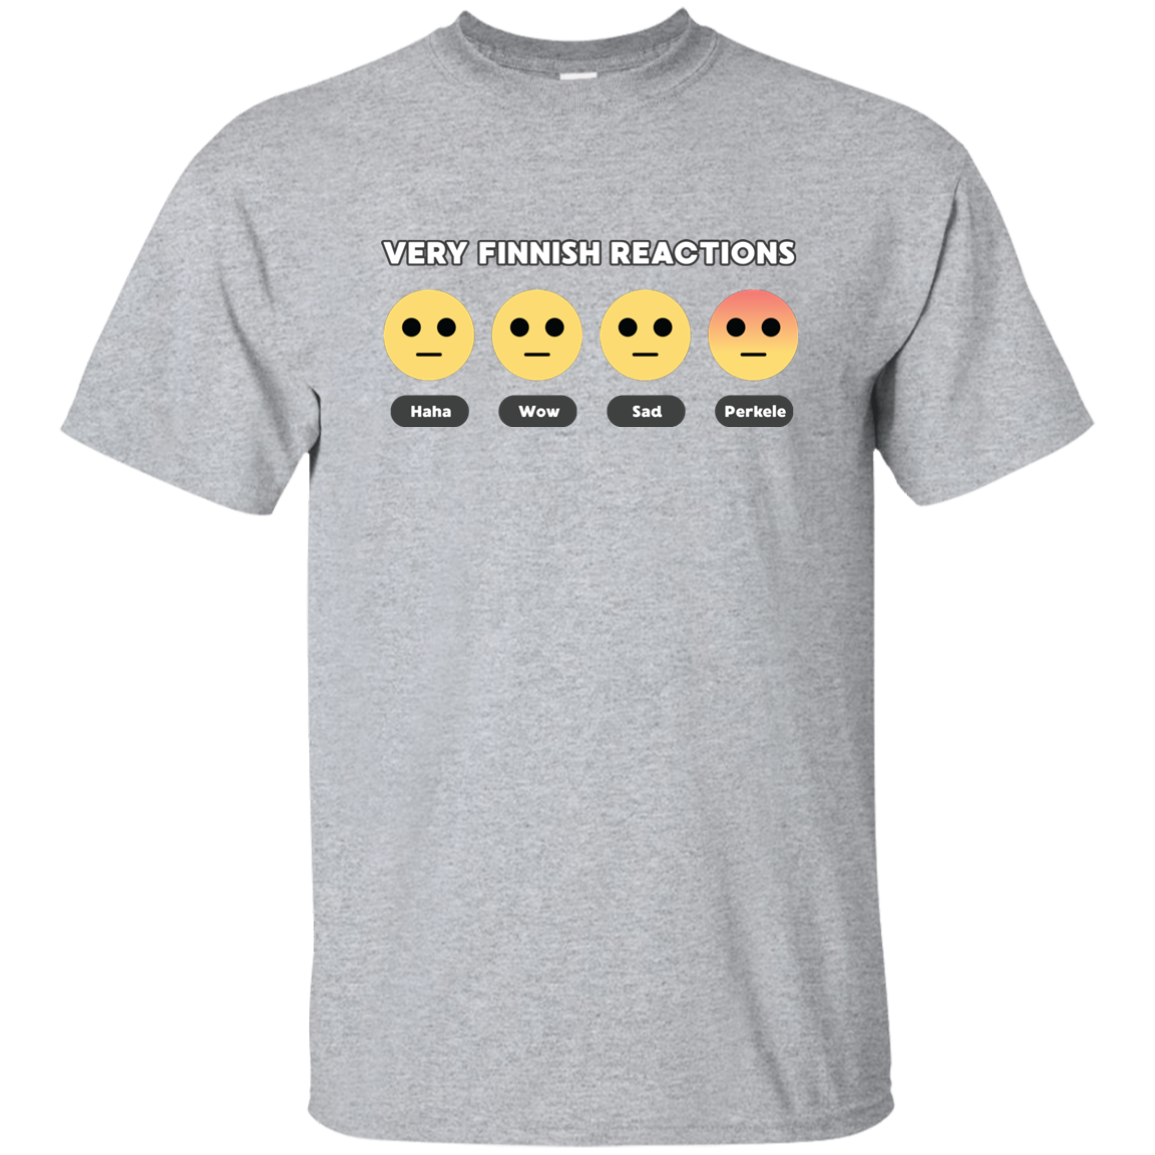 Very Finnish Reactions | T-Shirt